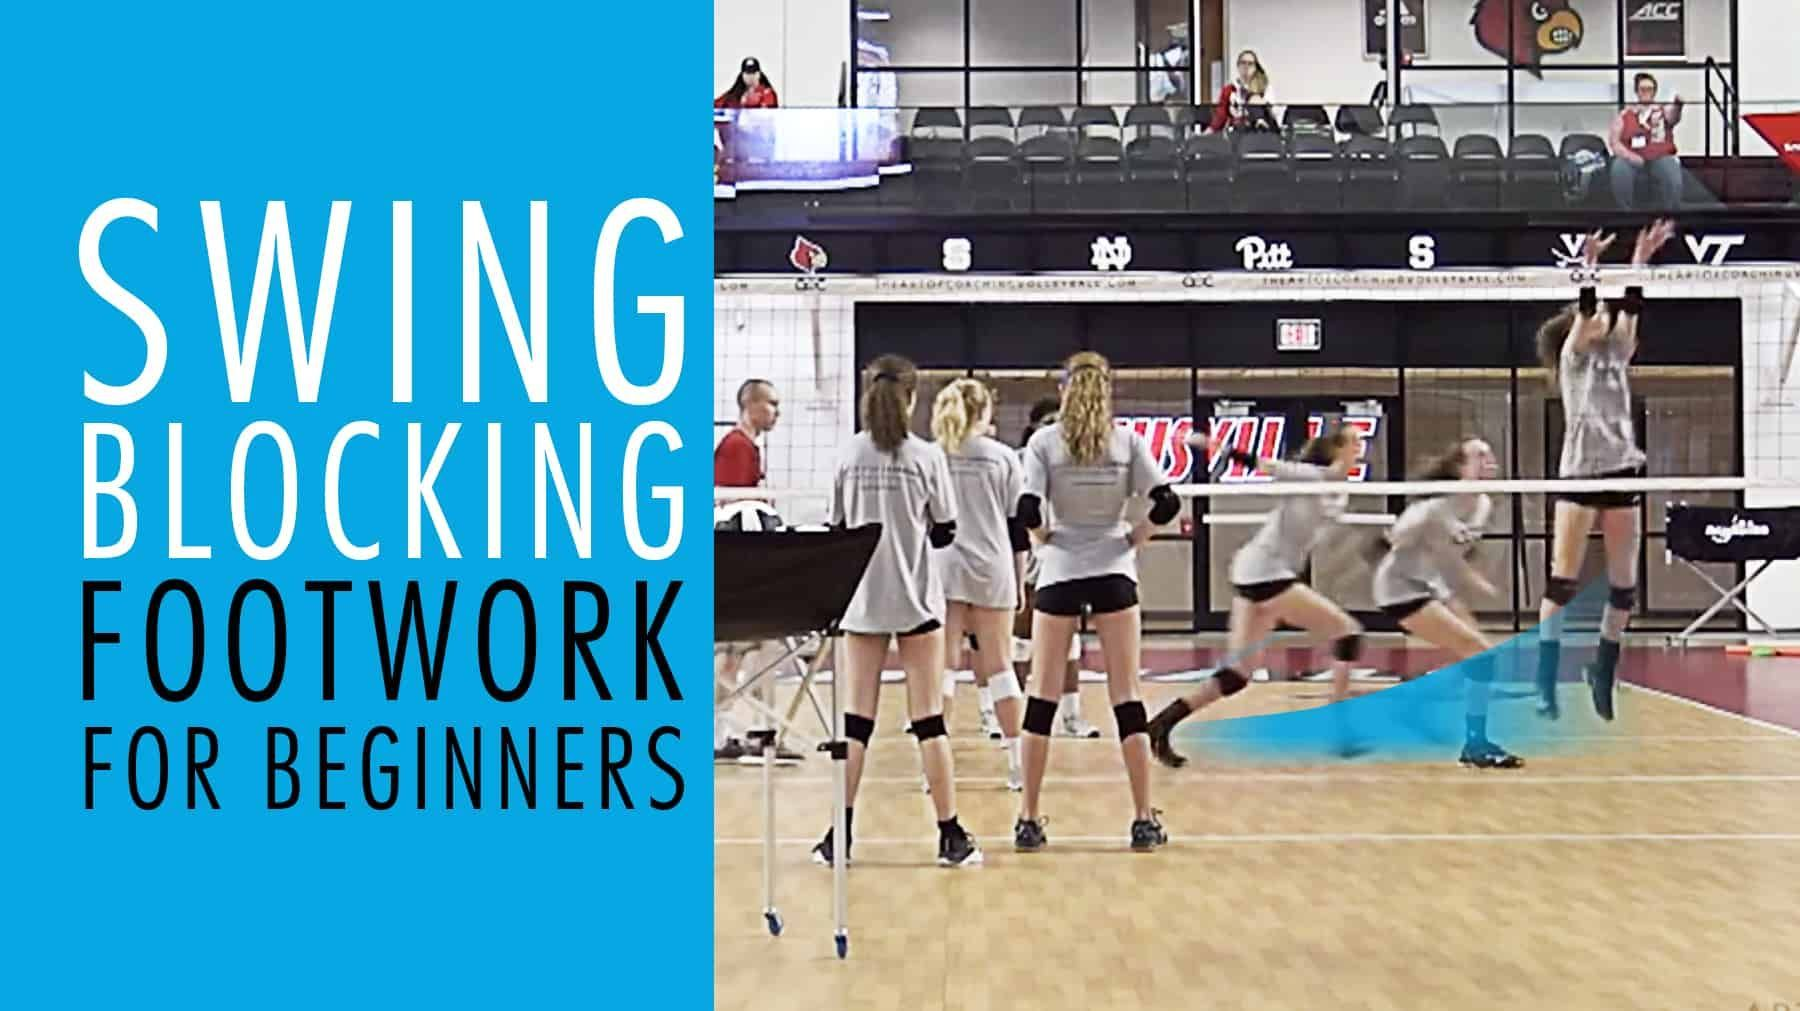 Swing Blocking Footwork For Beginners The Art Of Coaching Volleyball Coaching Volleyball Volleyball Volleyball Training